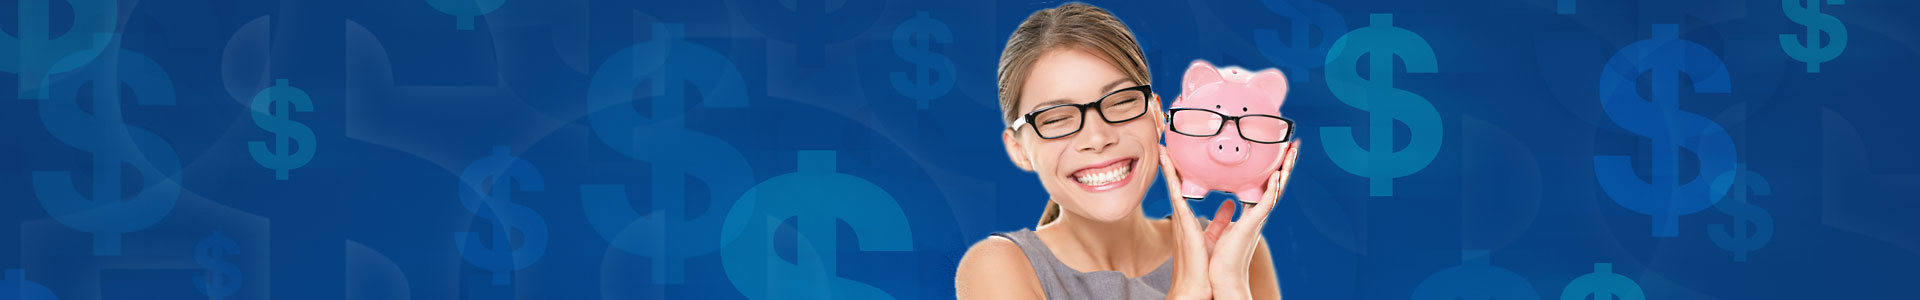 woman smiling holding piggy bank